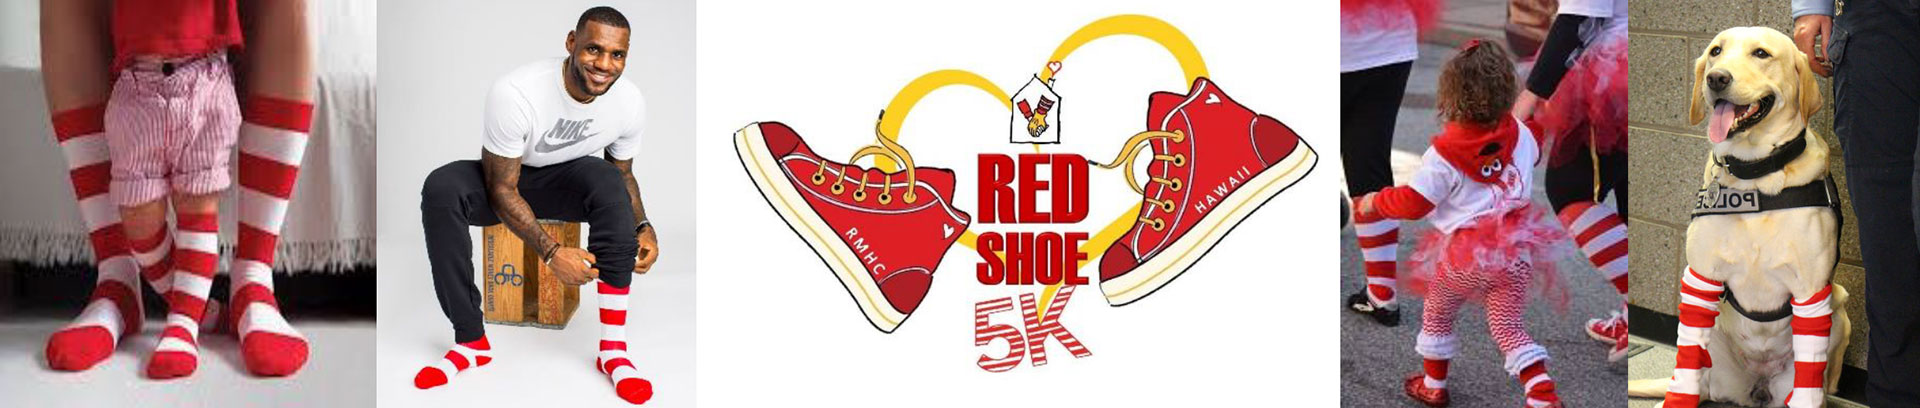 rmhchawaii red show 5k run event image